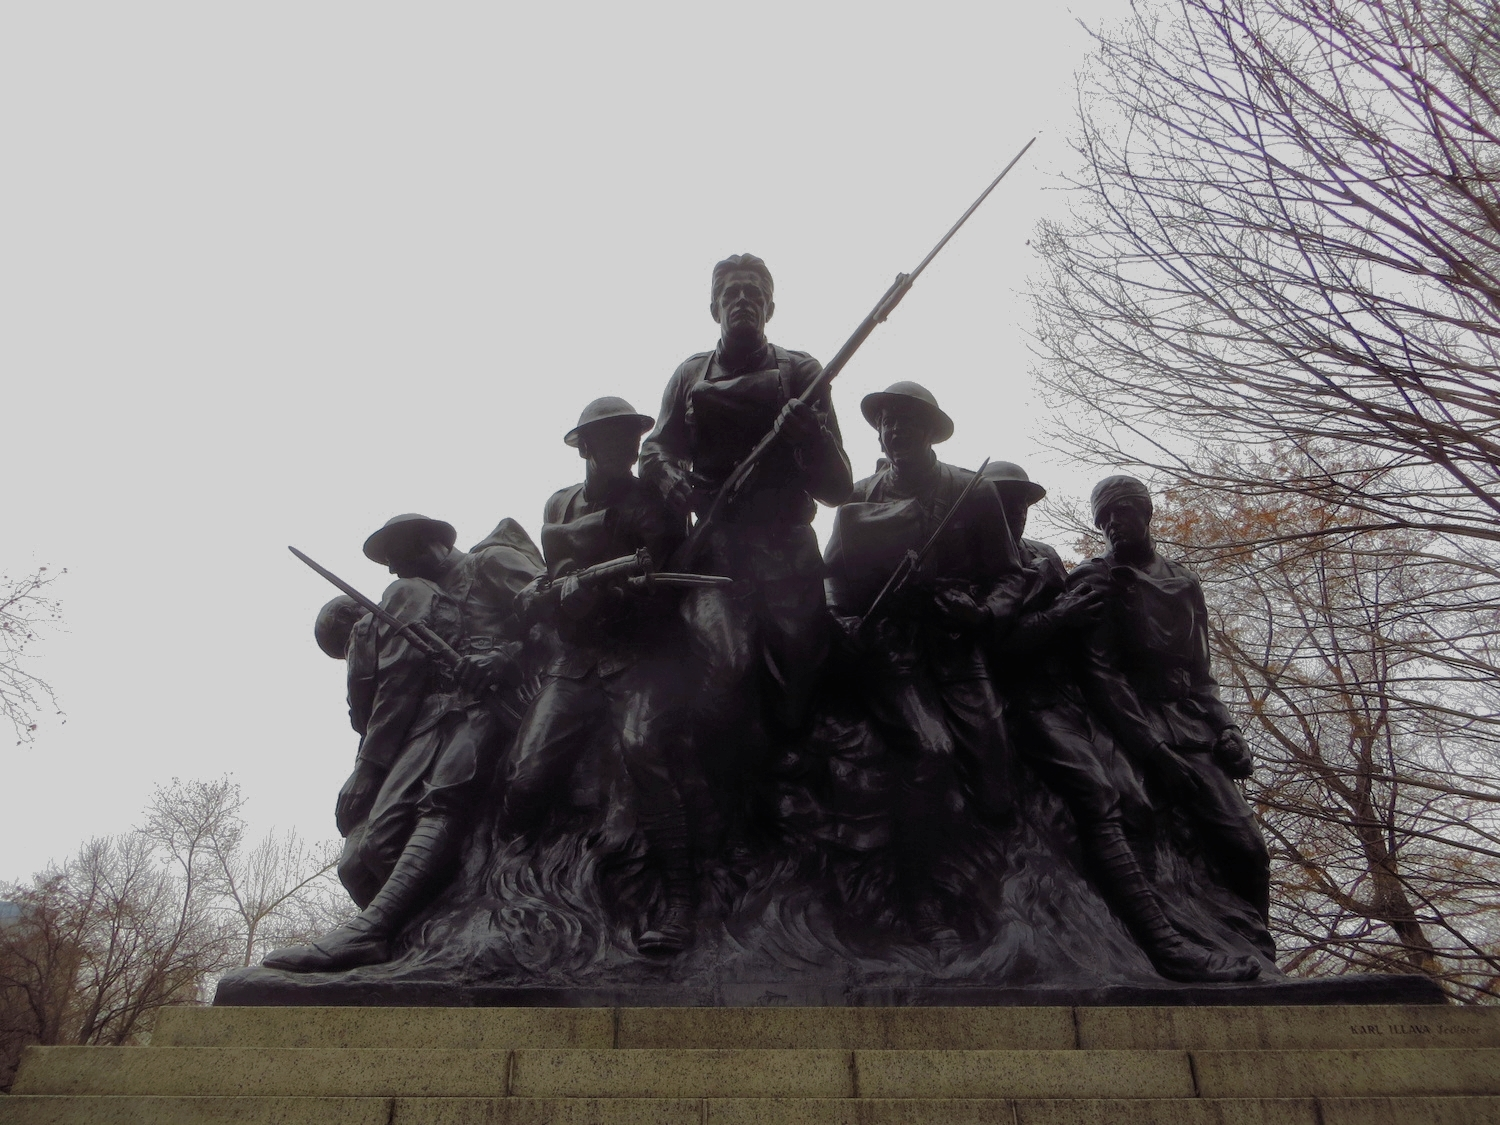 107th Infantry Memorial (WWI)